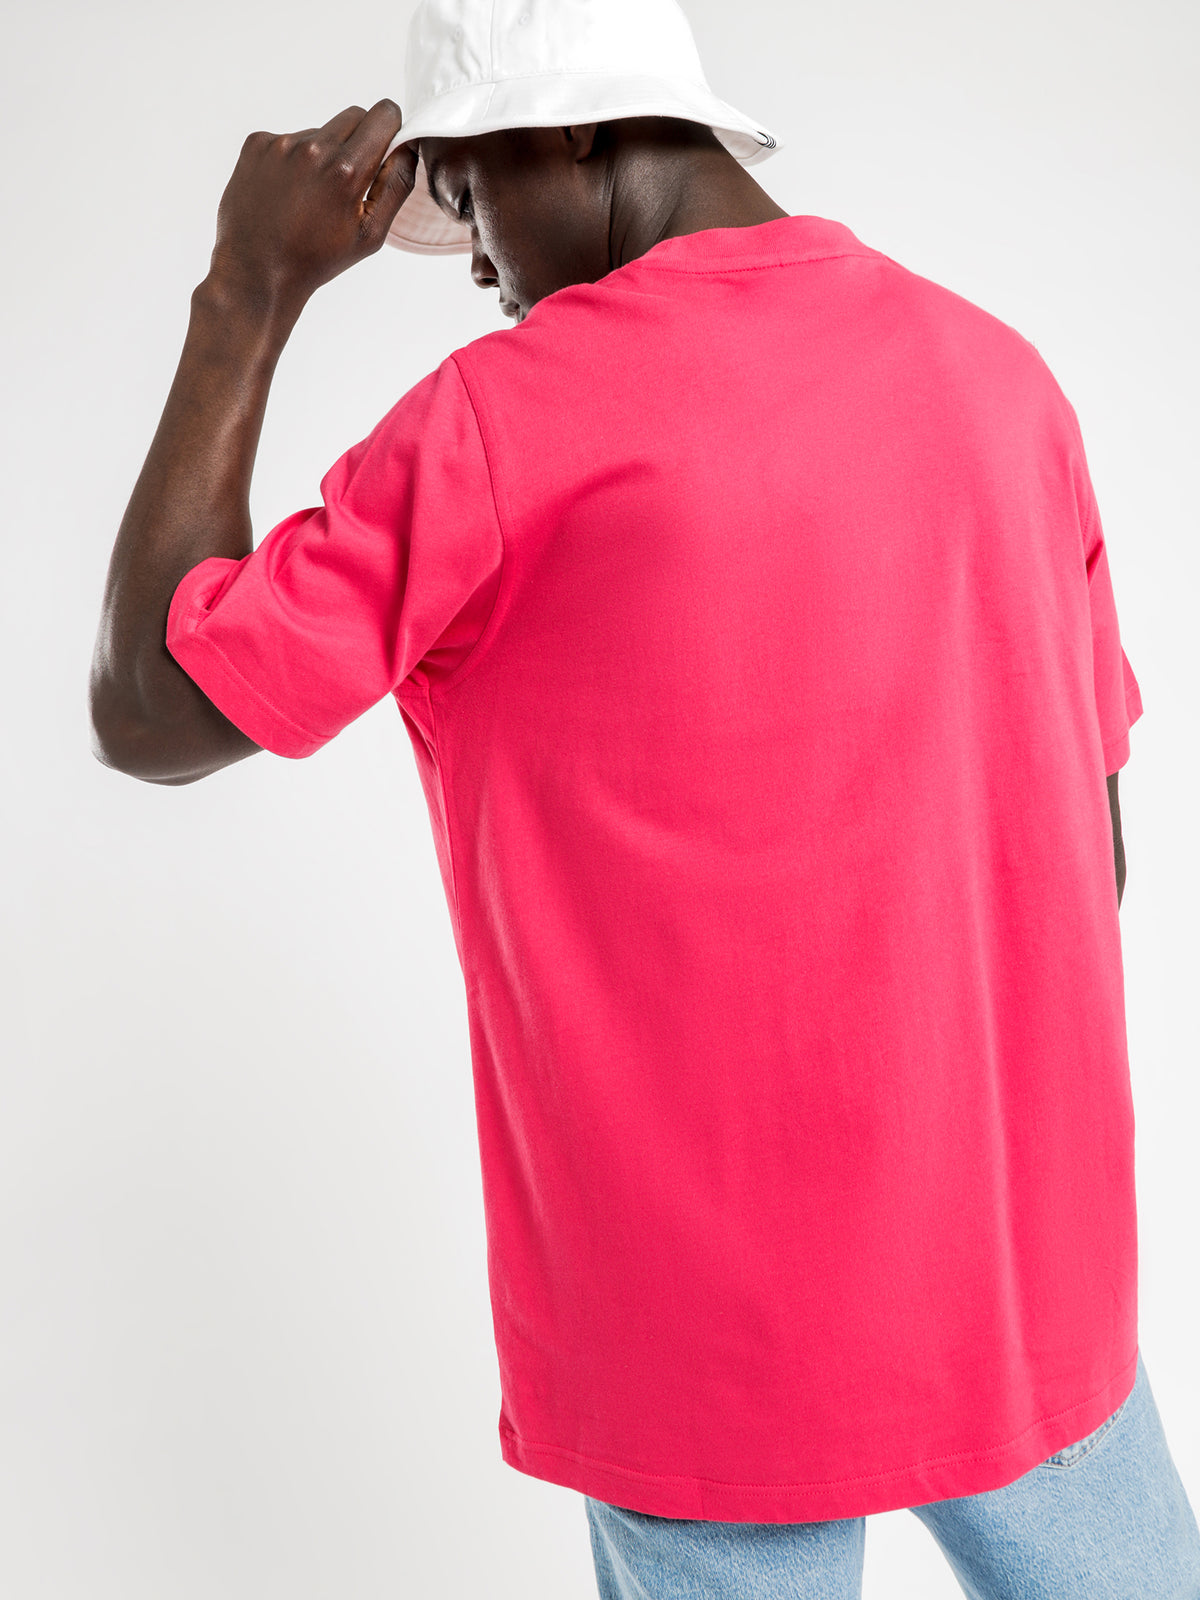 Trefoil Outline T-Shirt in Power Pink